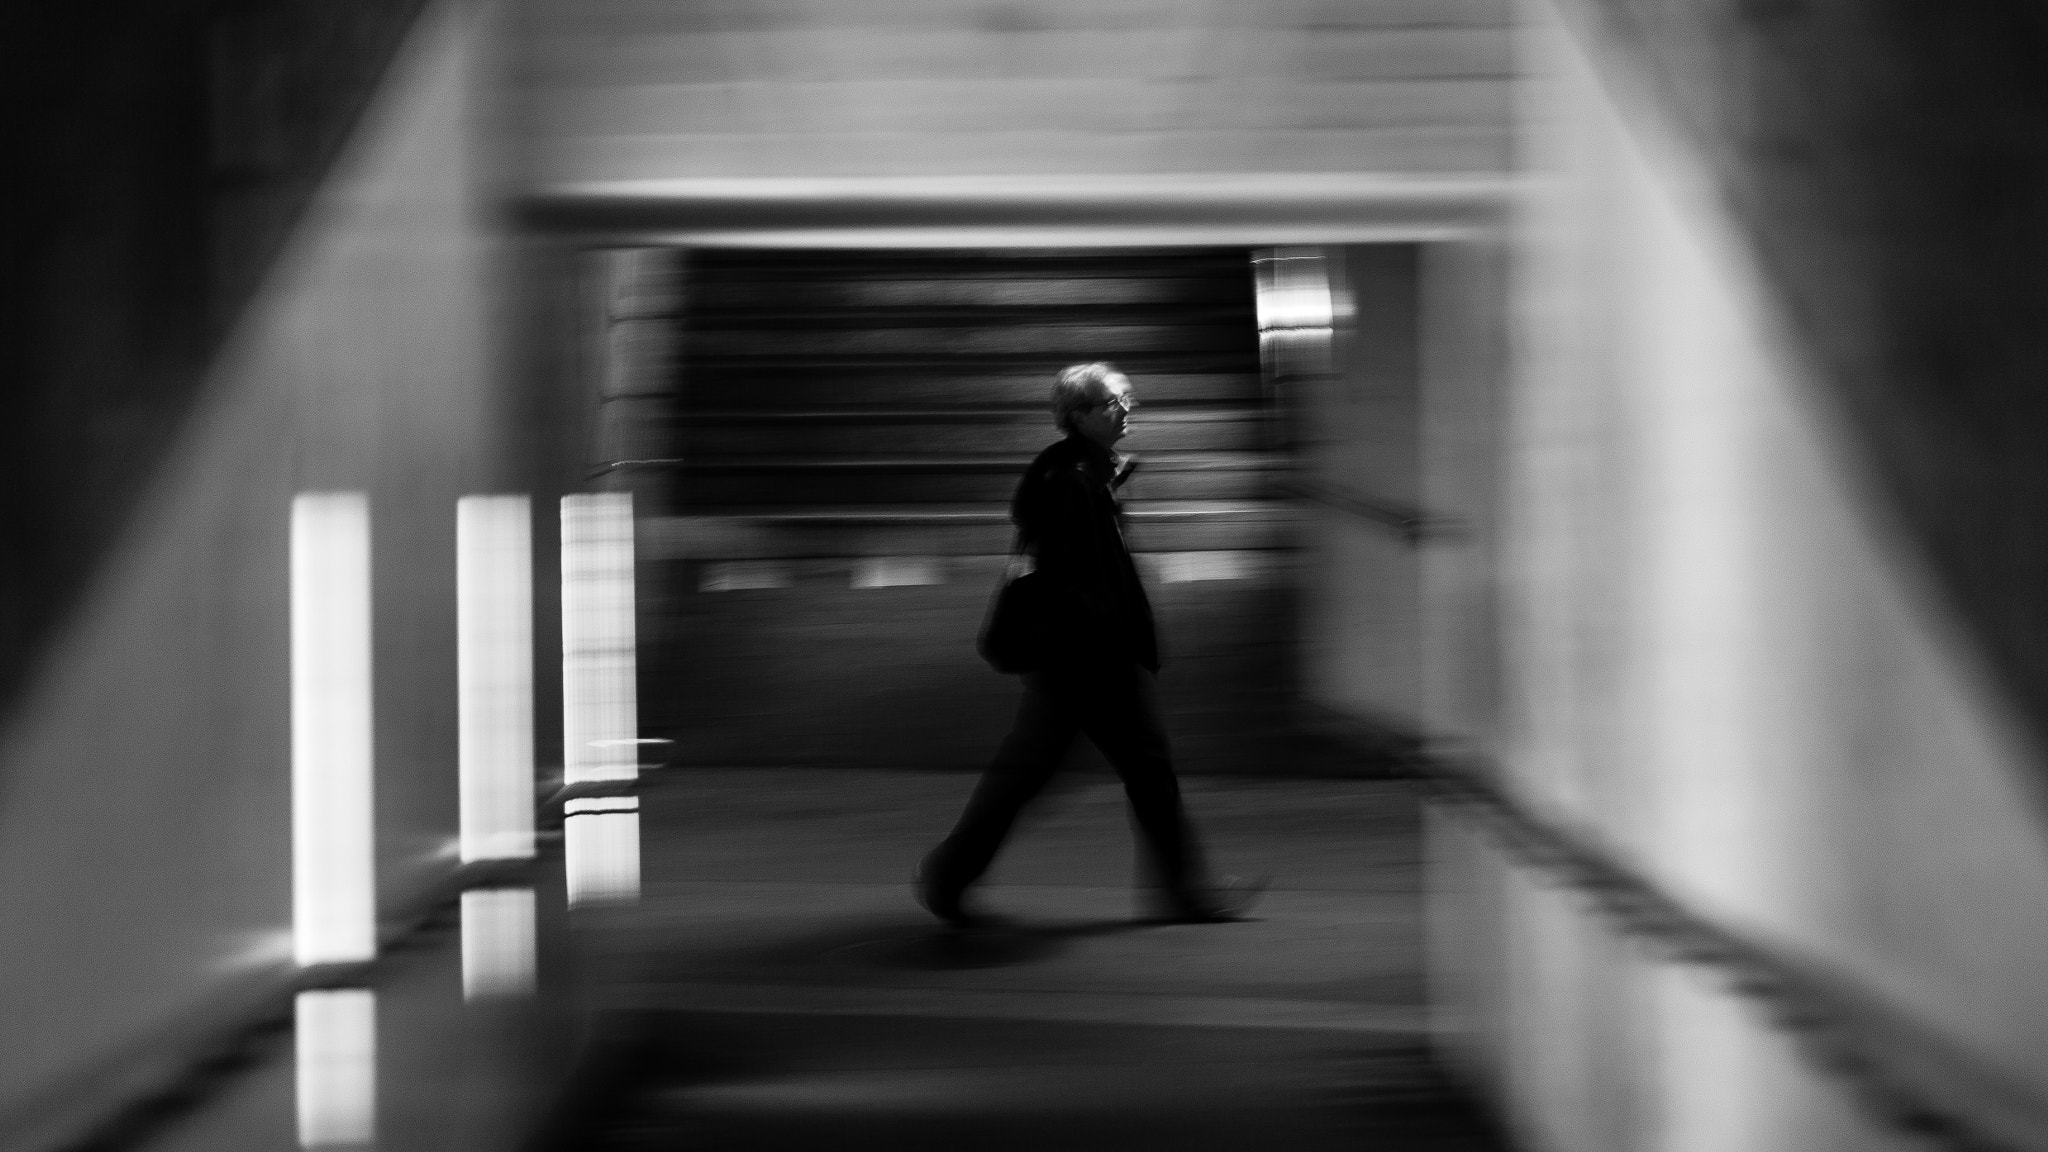 Photograph He's walking by Xavier   on 500px